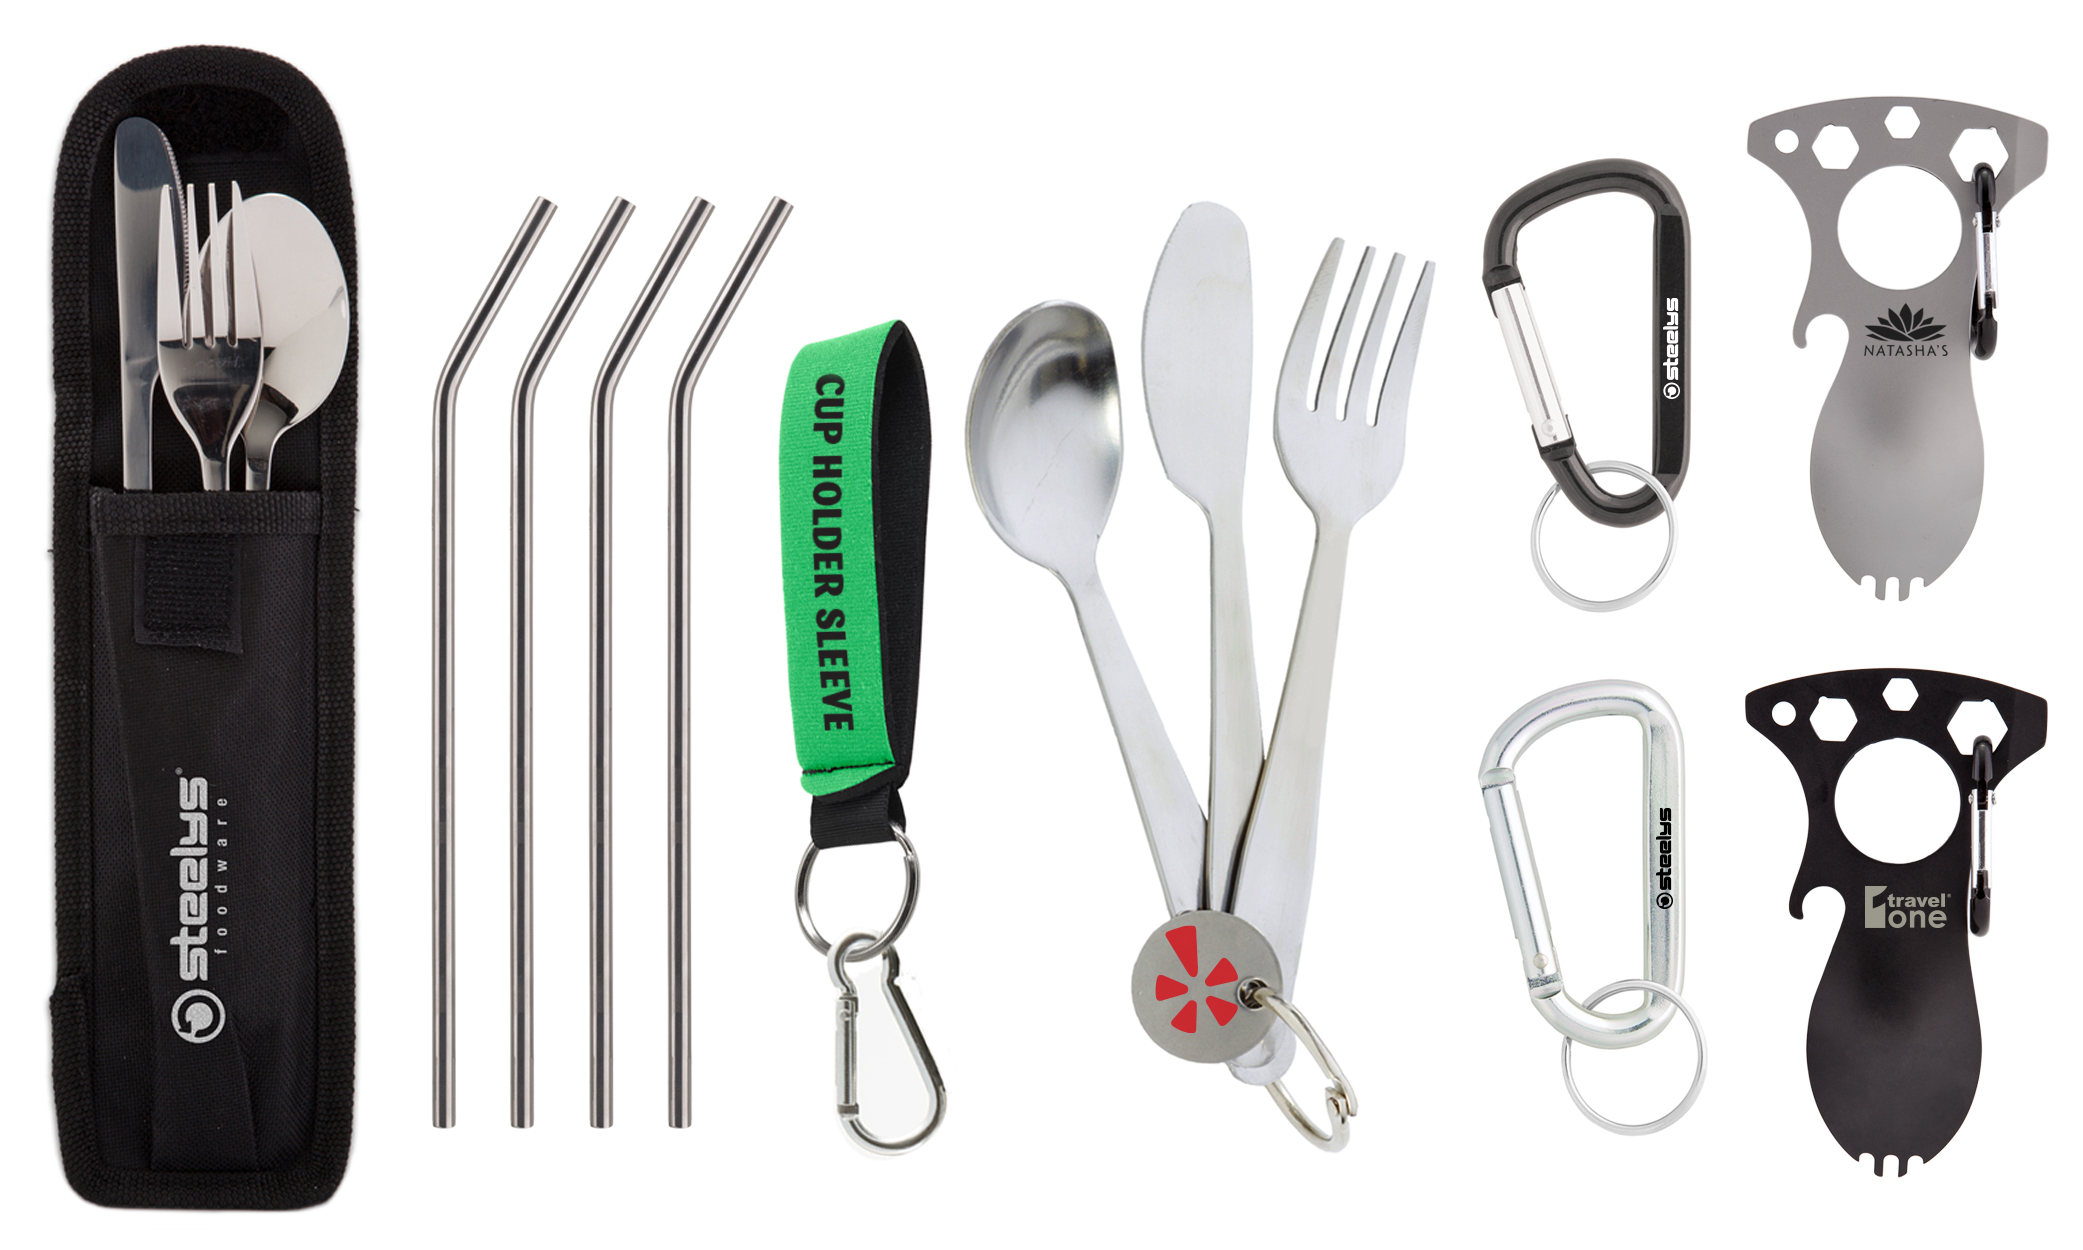 stainless steel straws, carabiners, utensils set, and neoprene bottle strap